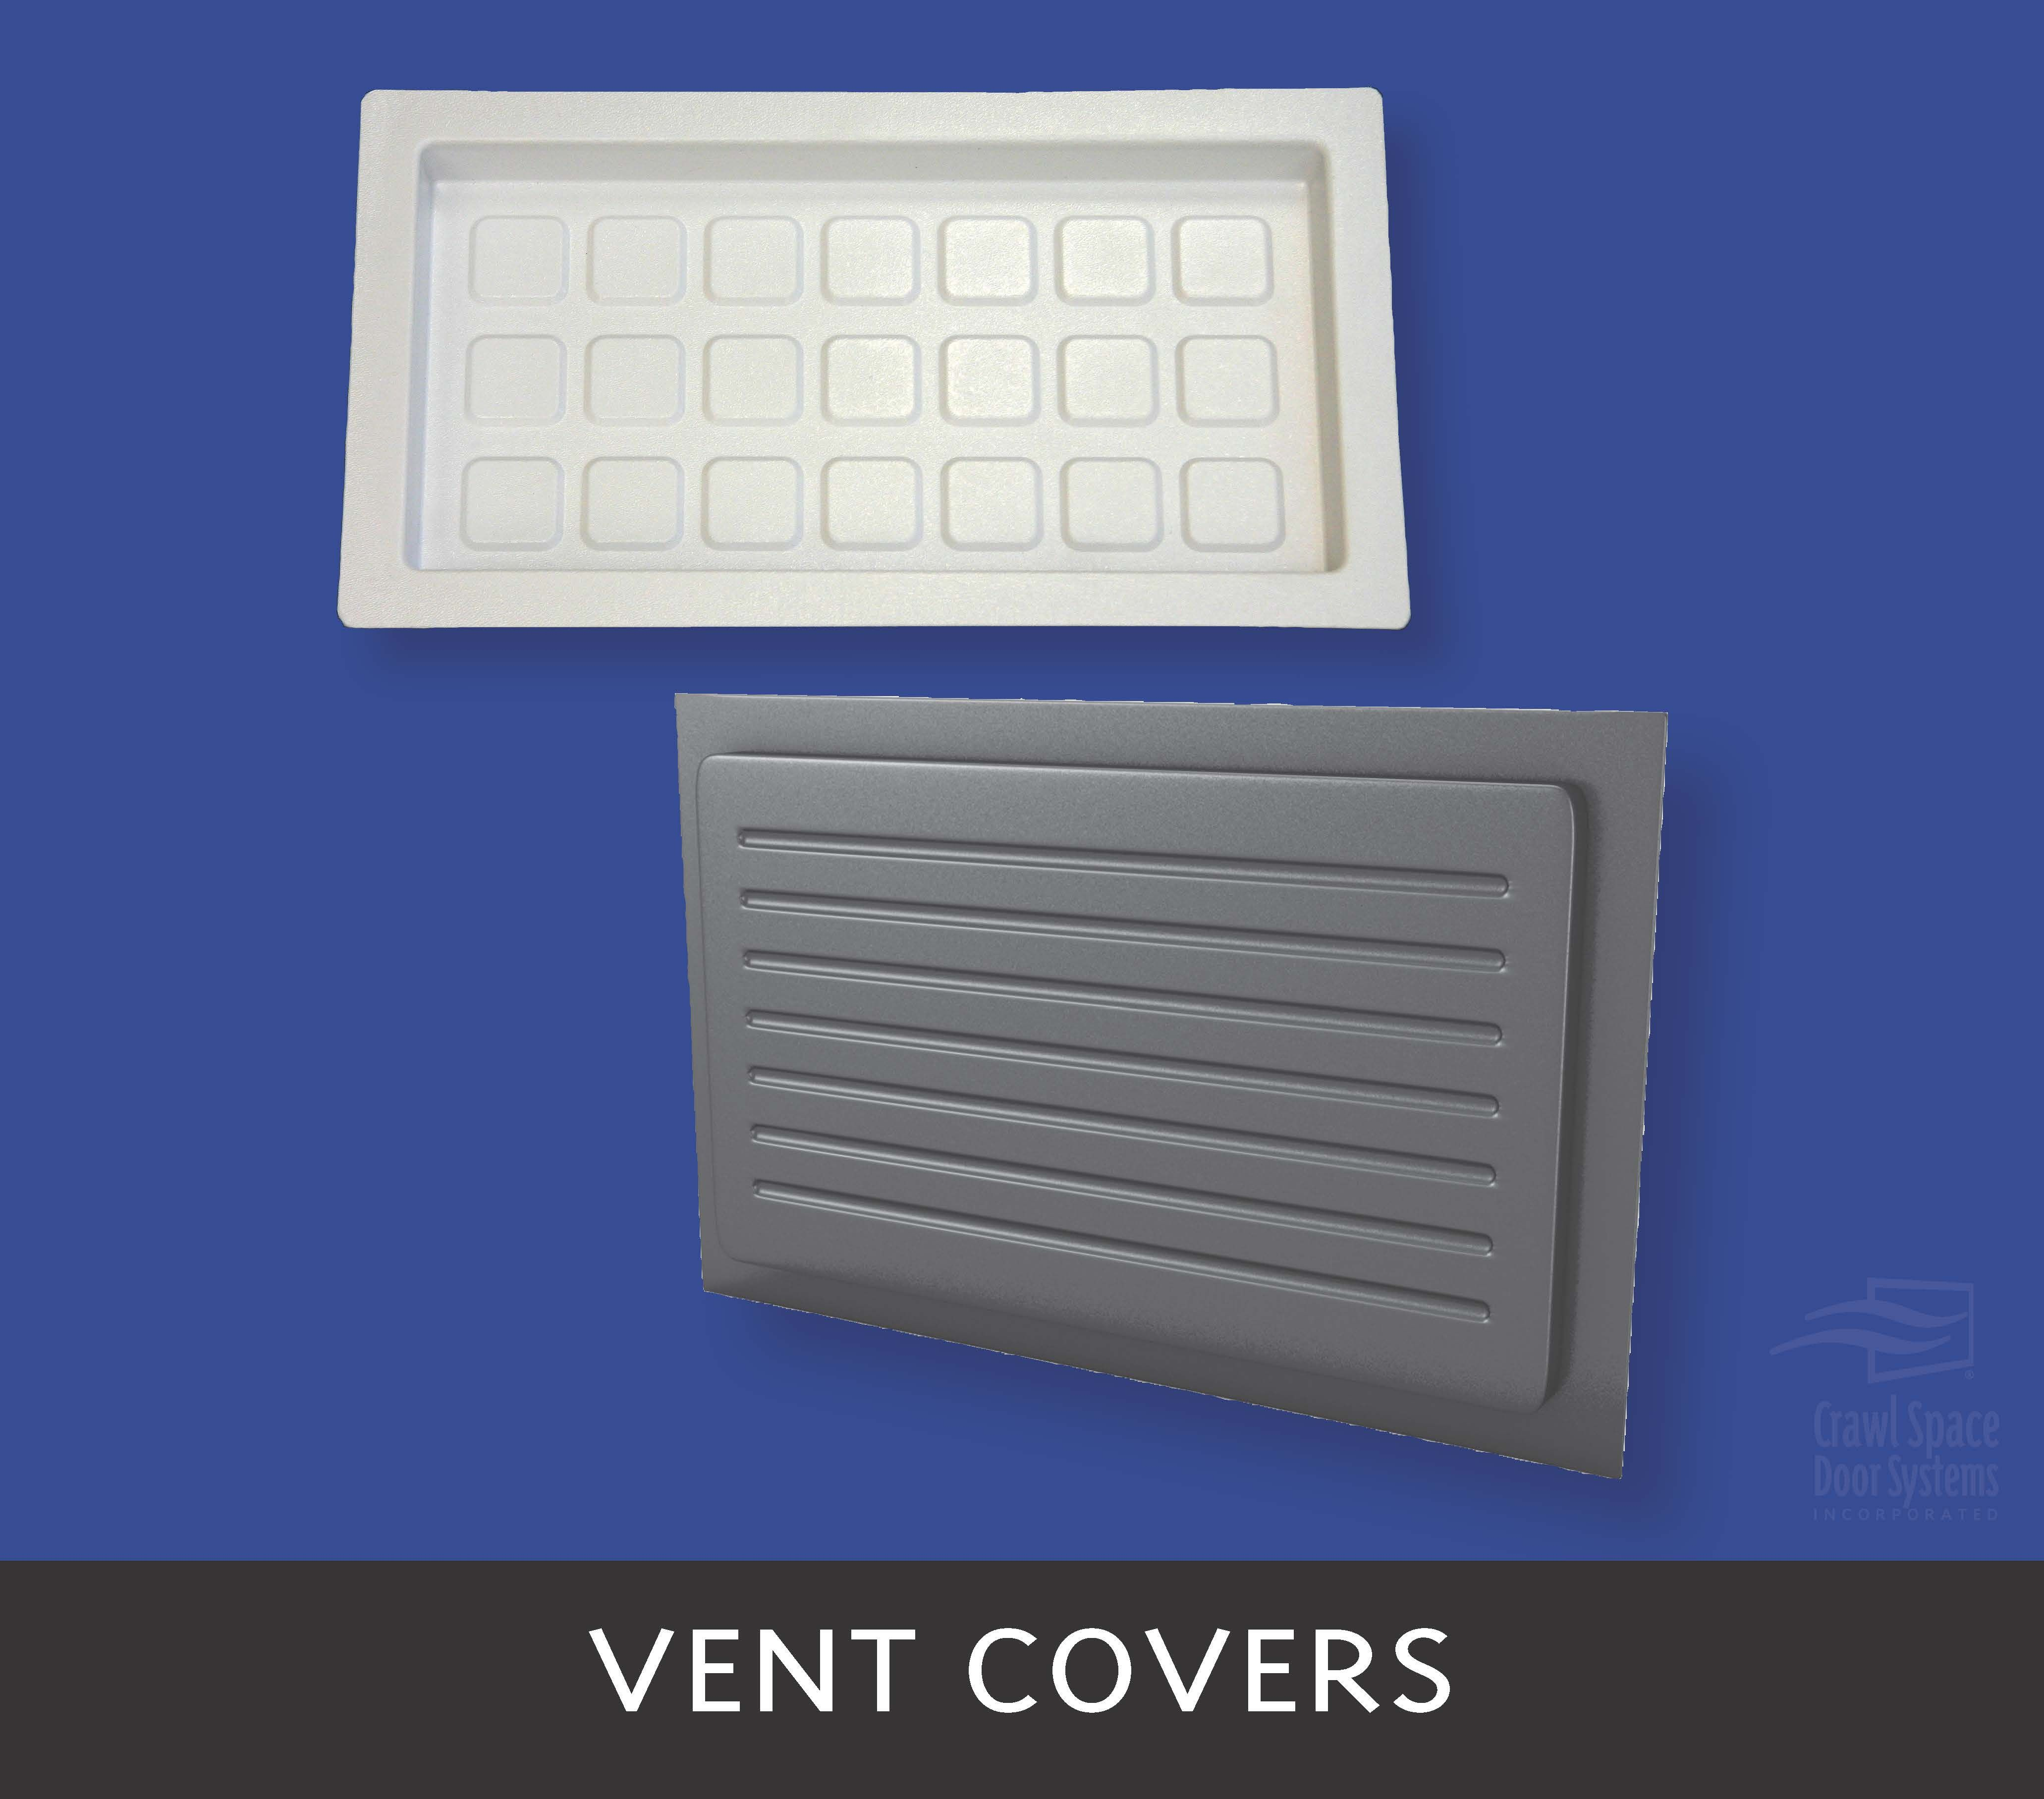 Recessed Vent Covers Crawl Space Vent Covers Vent Covers Crawl Space Vents